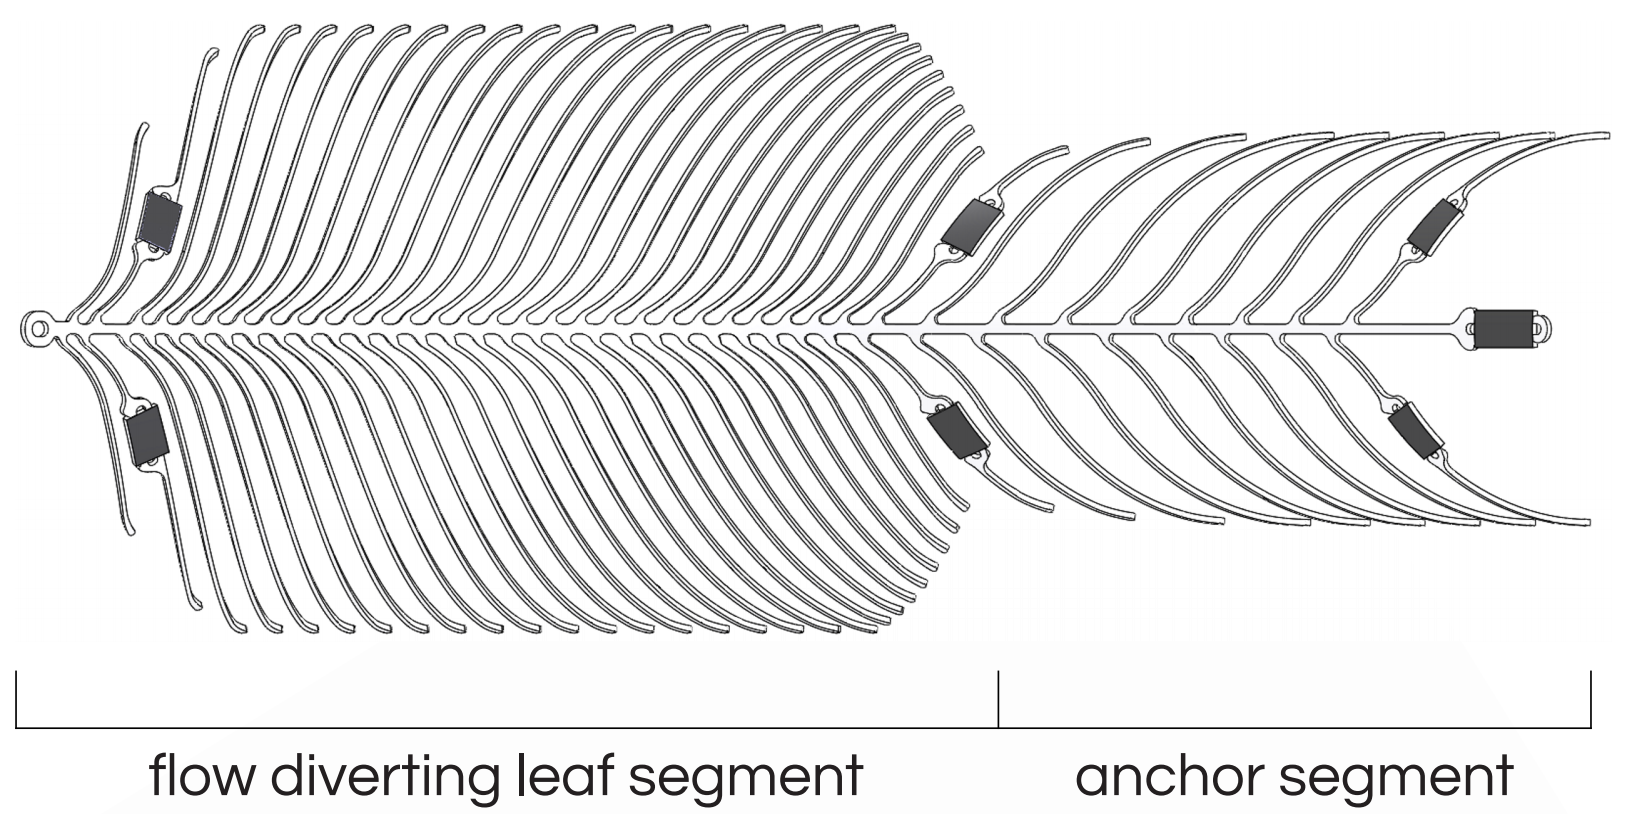 Illustration showing the size of the flow diverting leaf segment and the anchor segment.